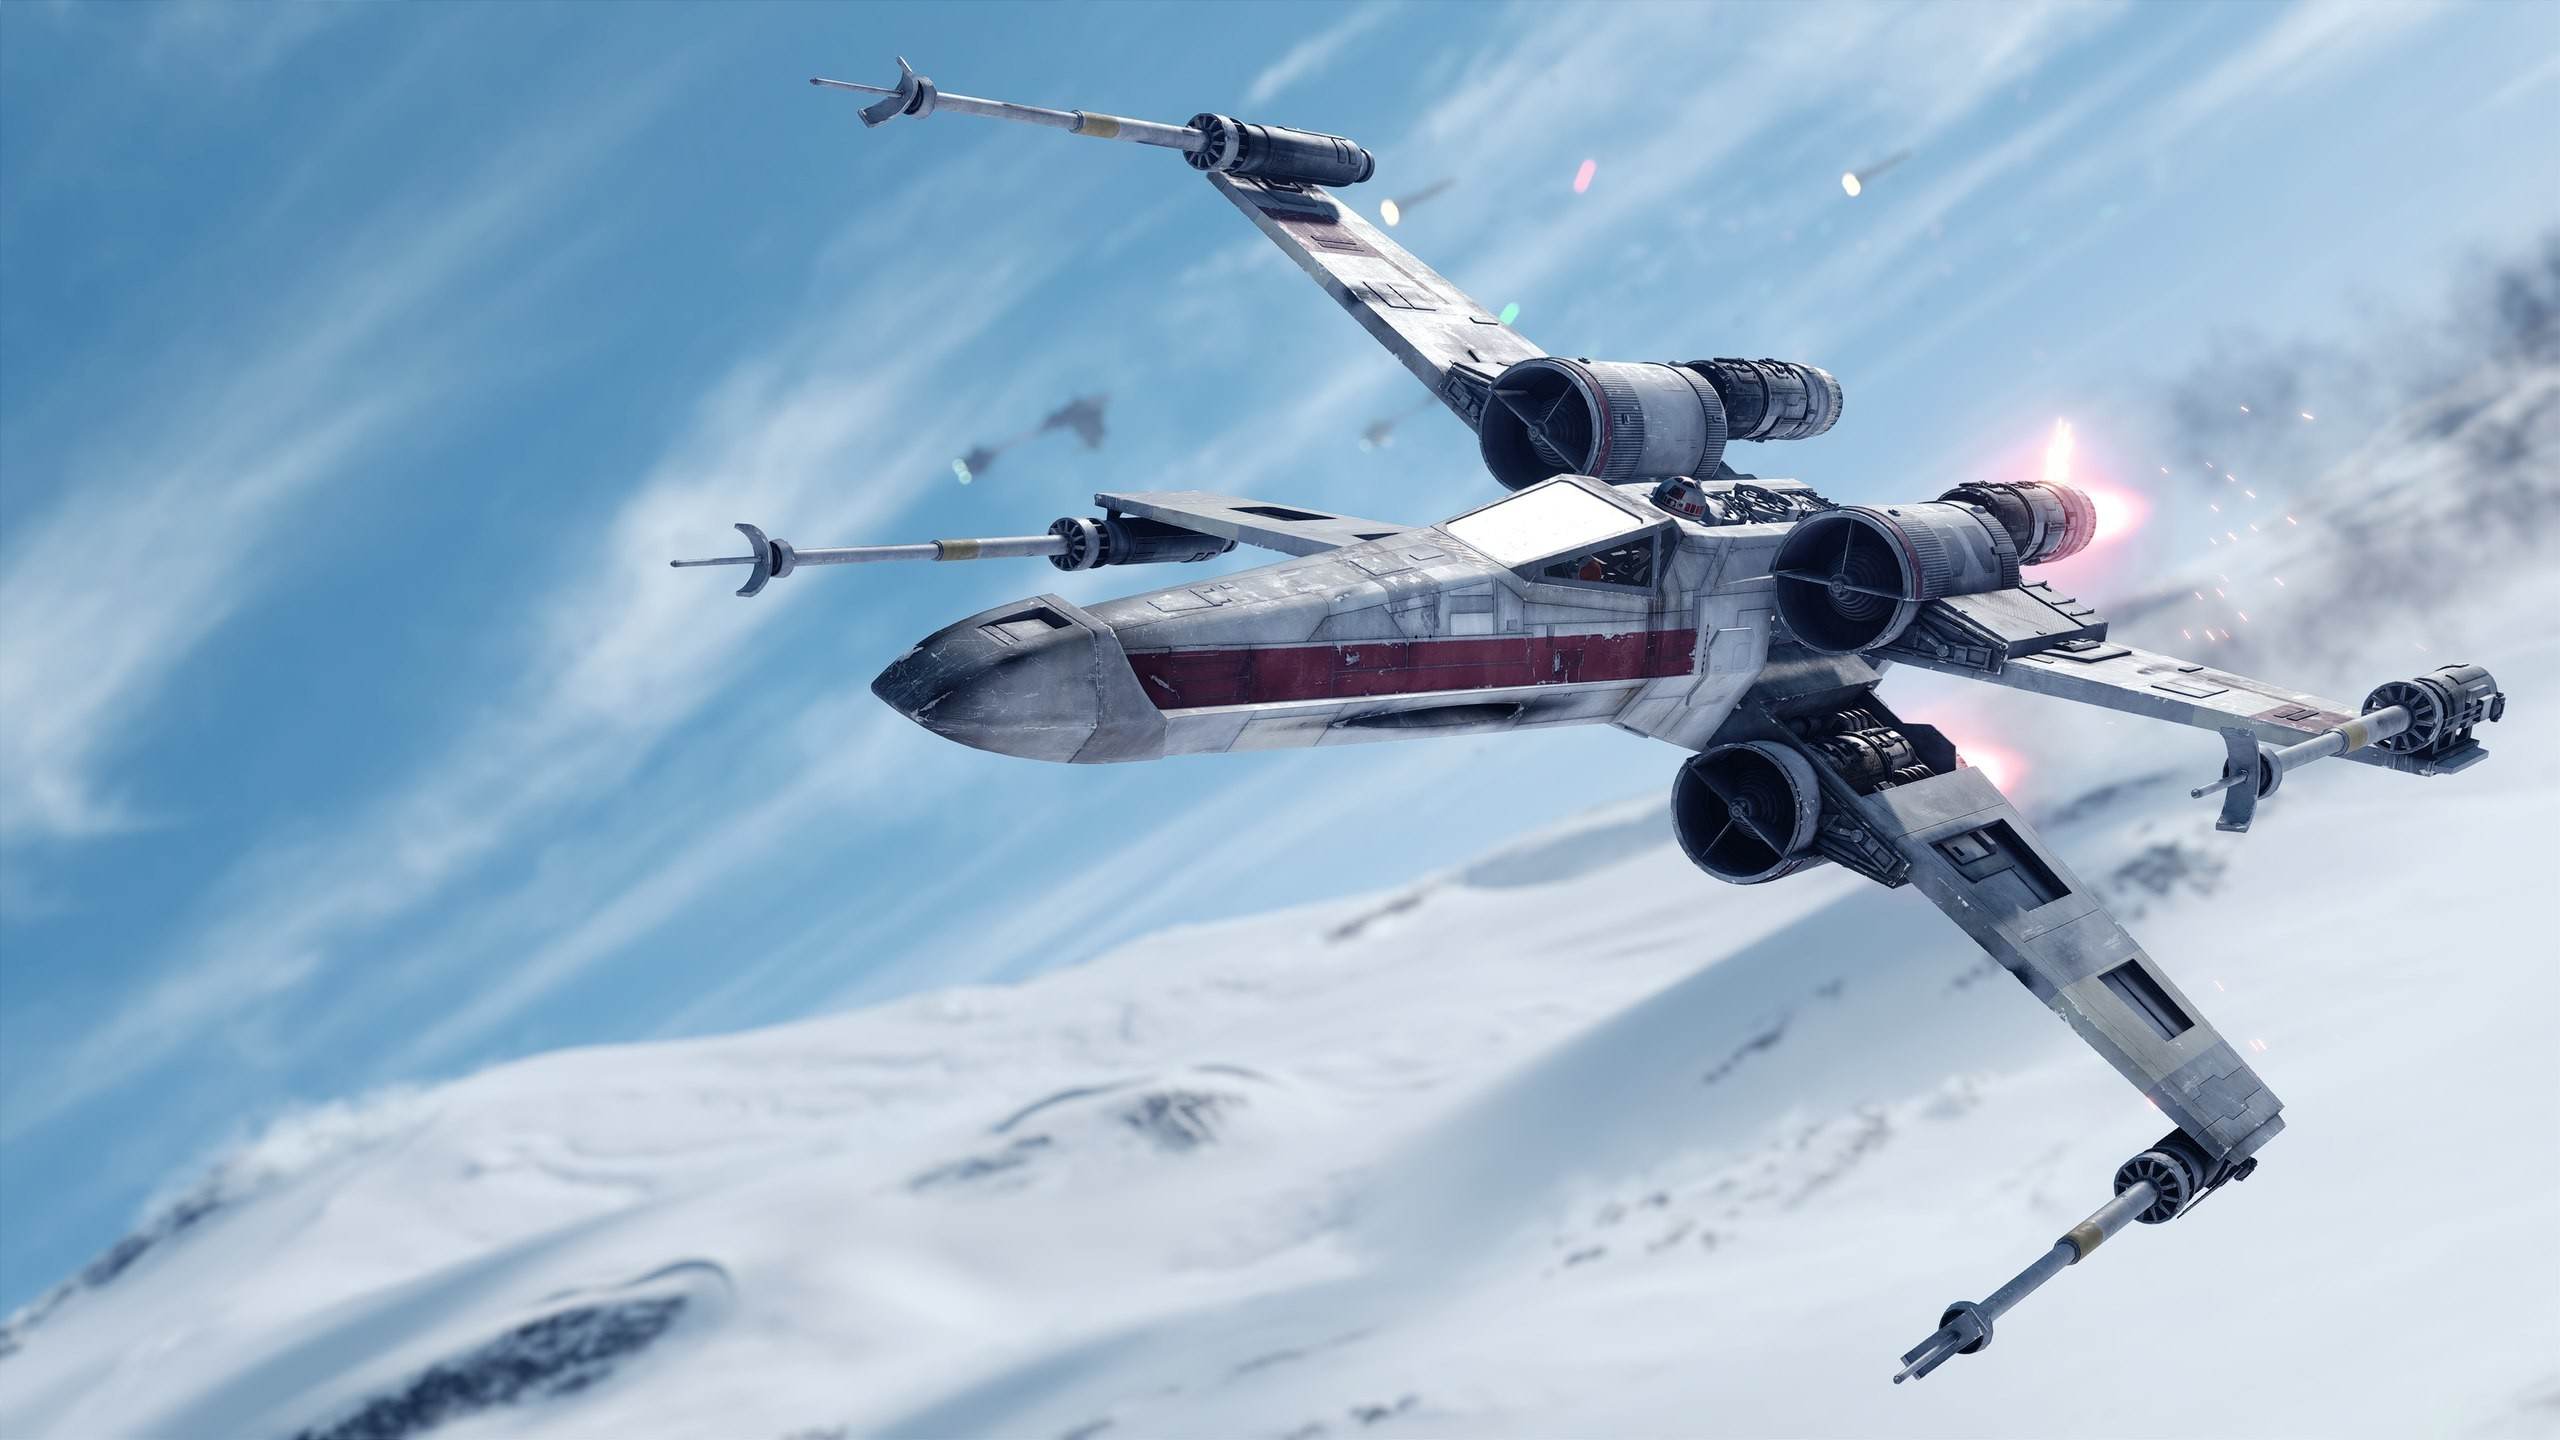 Star Wars Battlefront Fighter Jet Wallpapers   HD Wallpapers